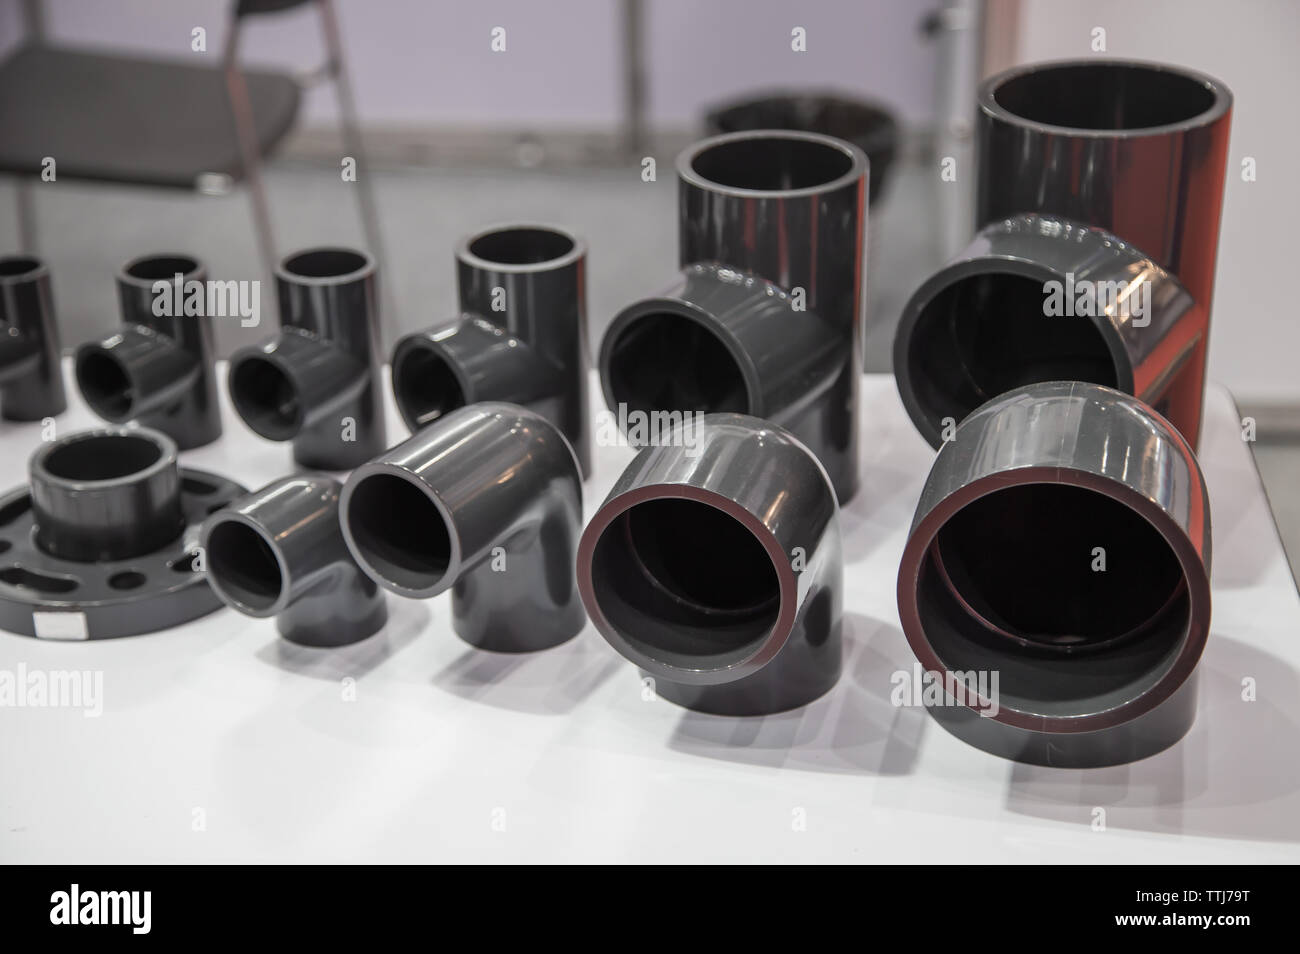 Hdpe Pipe Stock Photos & Hdpe Pipe Stock Images - Alamy